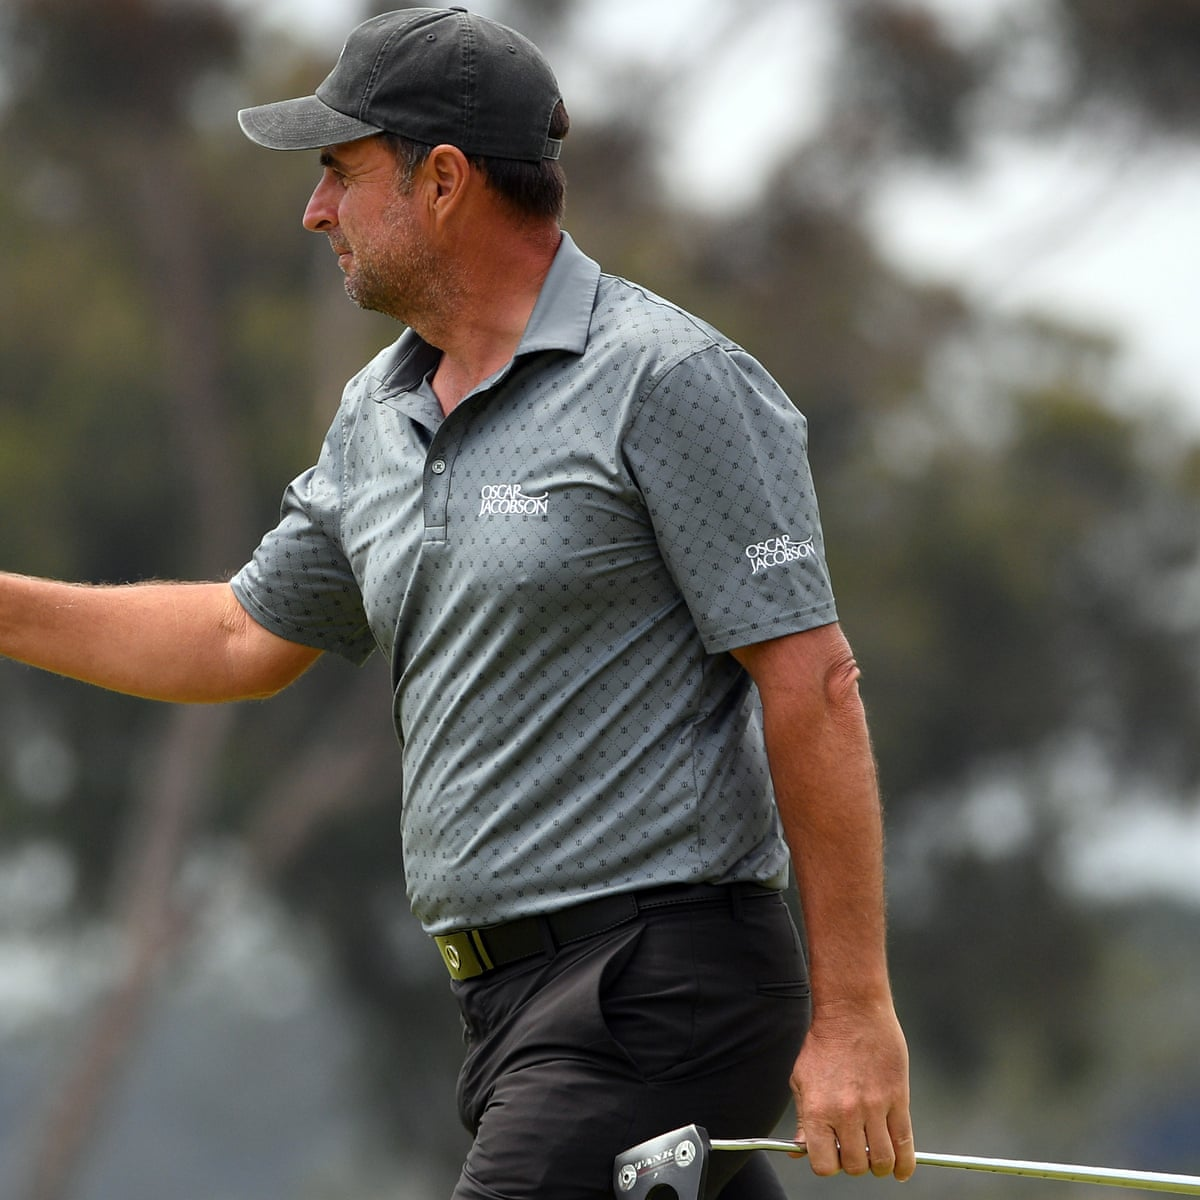 Us Open Golf 2021 Second Round As It Happened Sport The Guardian